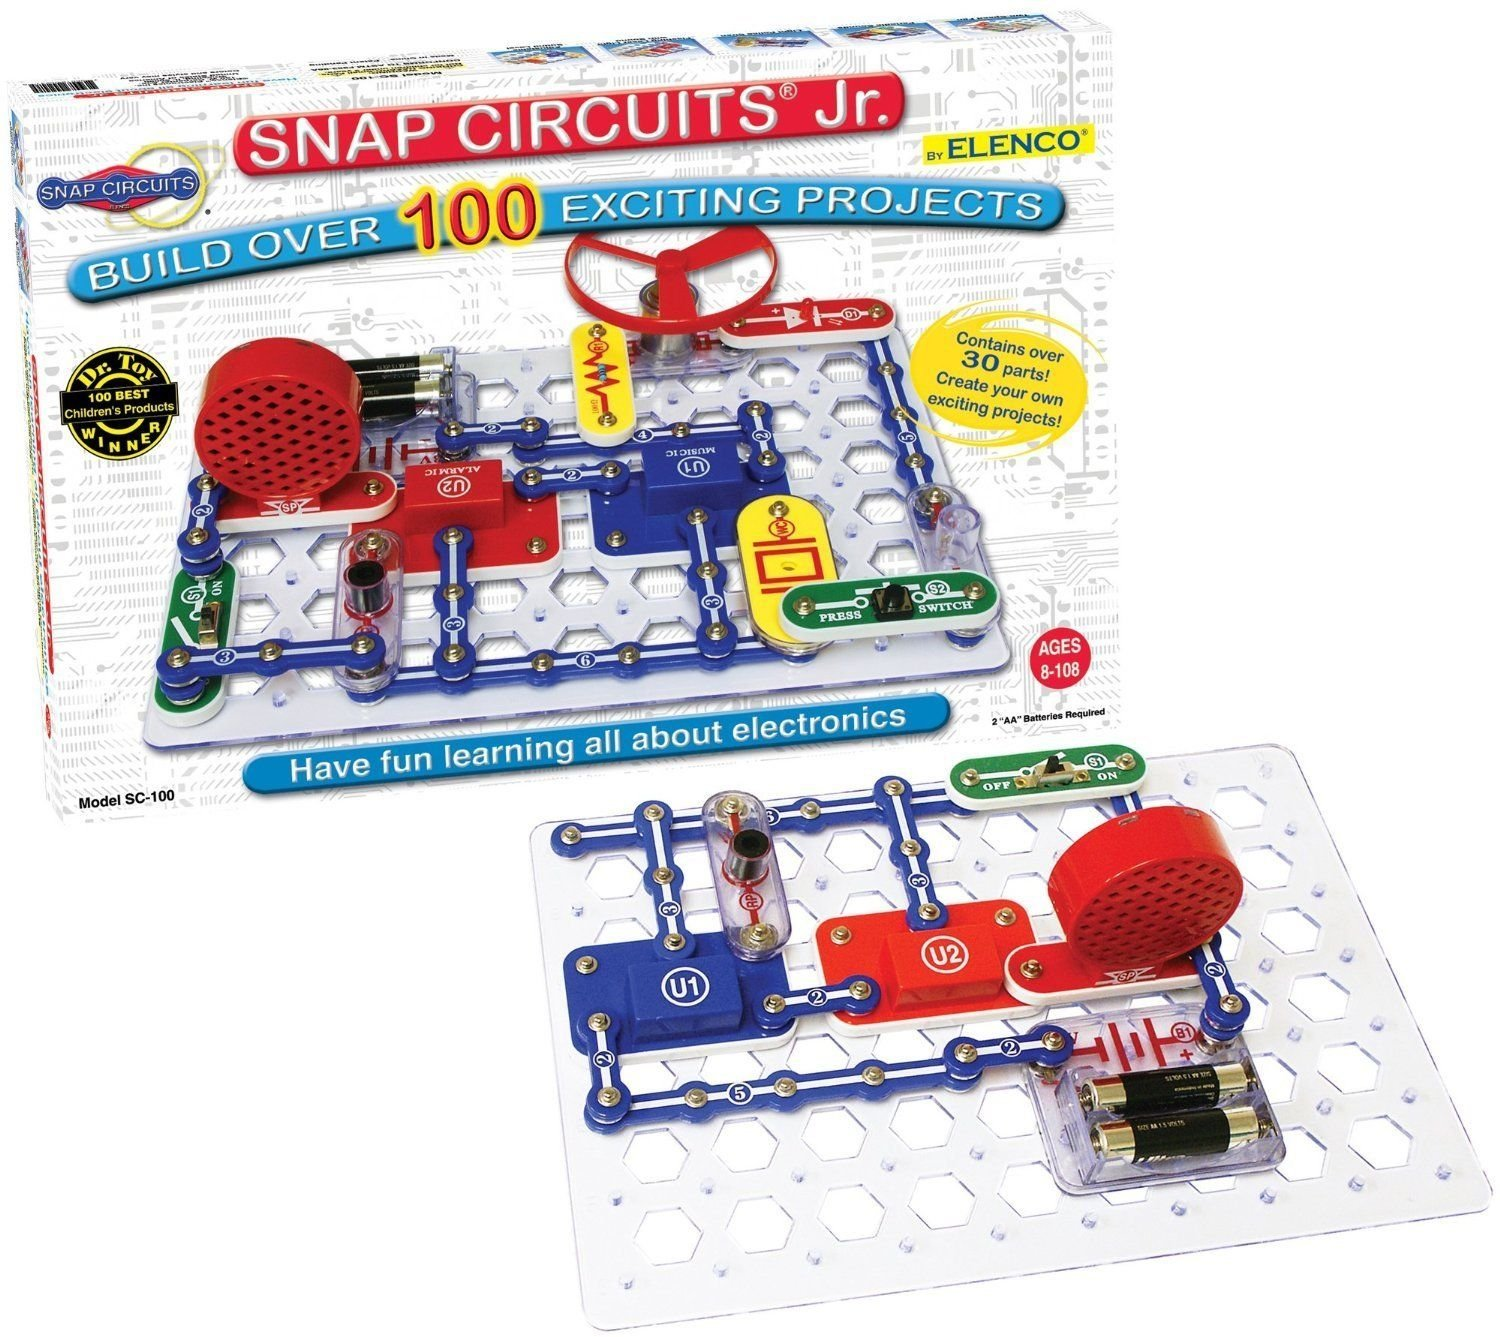 Snap Circuits Jr. SC-100 Electronics Discovery Kit (Standard Packaging) (SC-100)